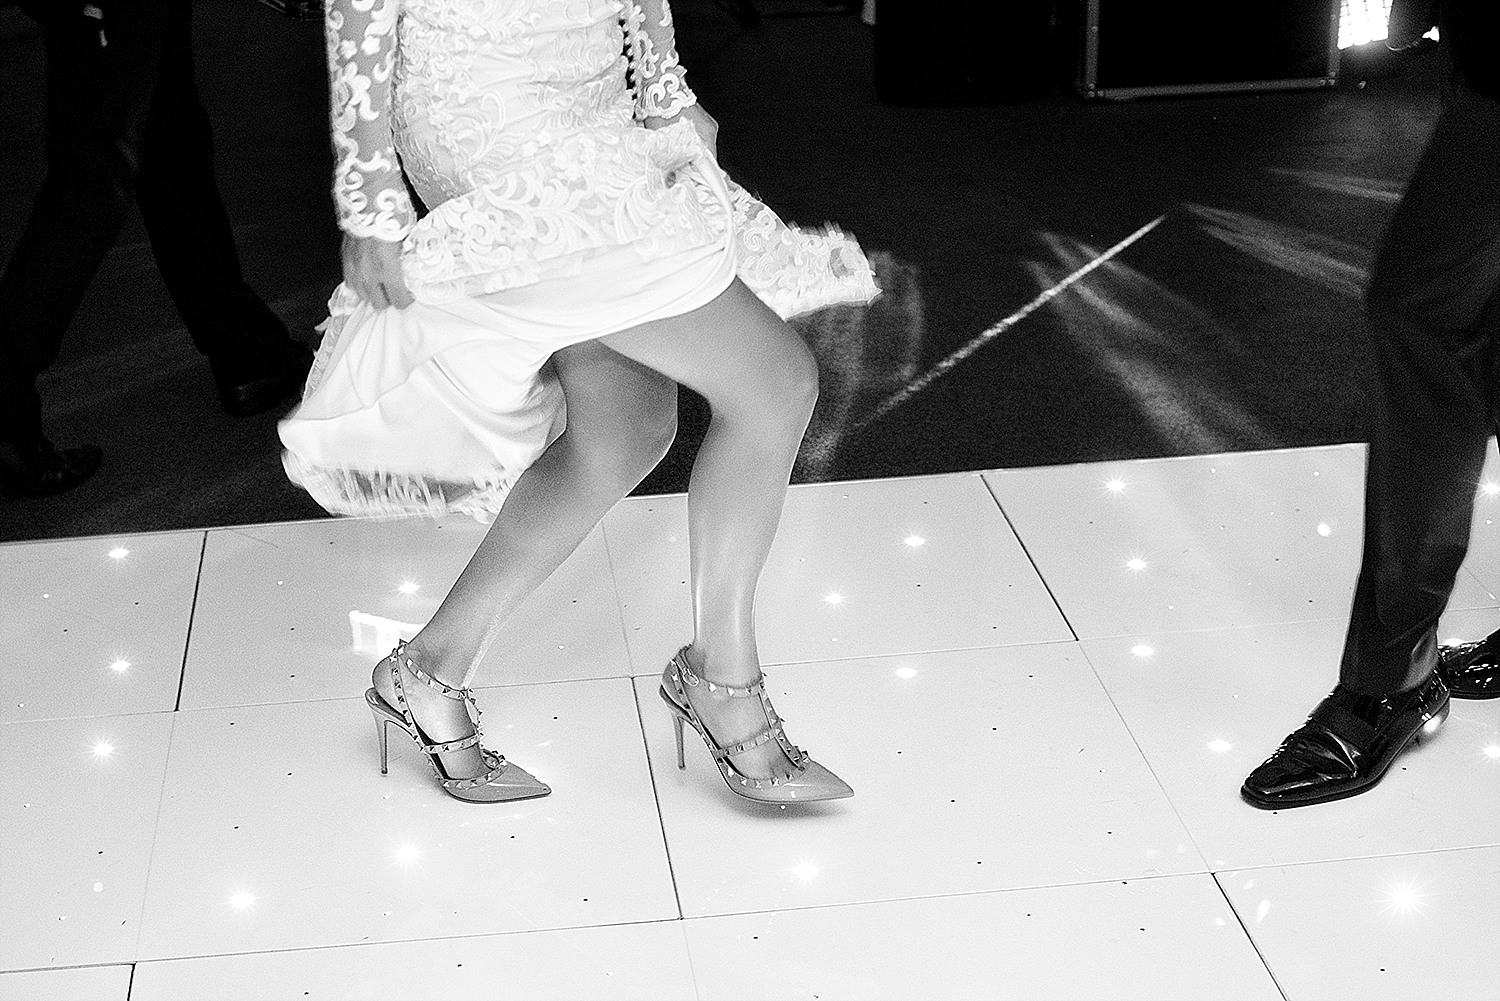 101_valentino rock studs shoes state reception centre wedding perth.JPG